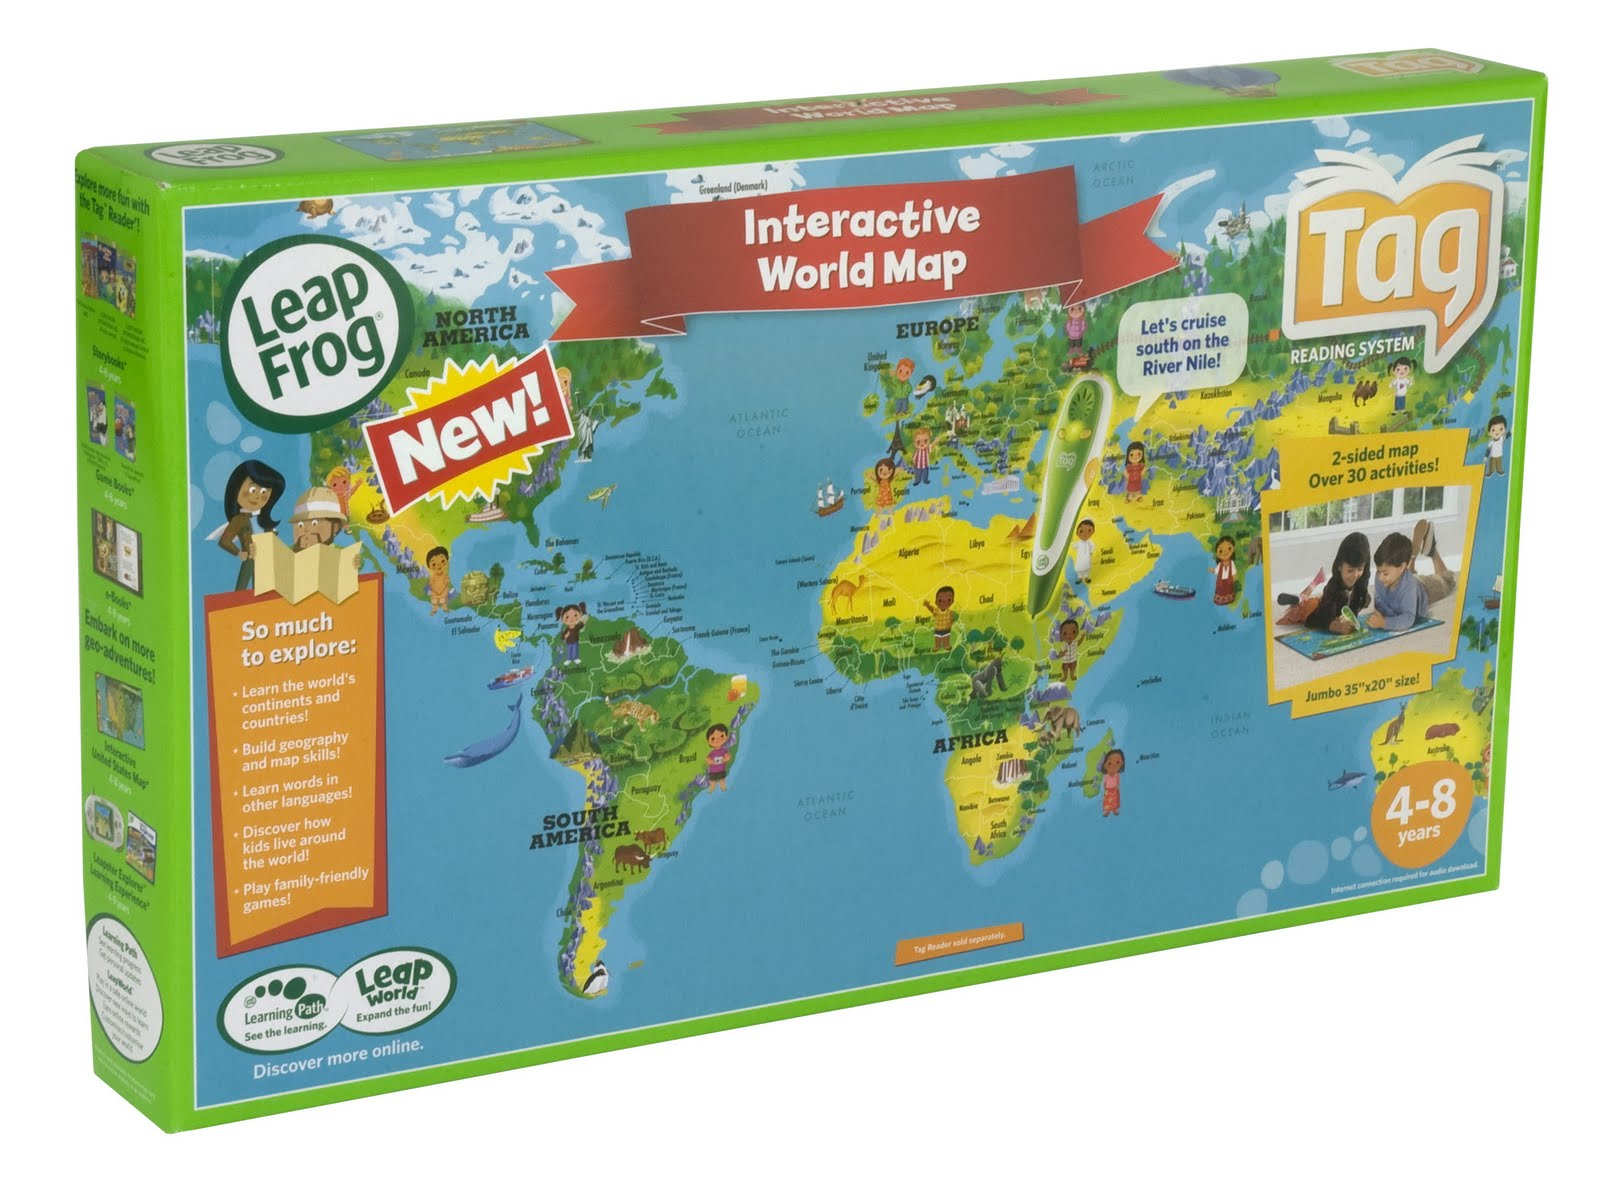 World map interactive touch pad elac campus map eso treasure map leapfrog leappad review tag world map review moms blog world map interactive gumiabroncs Images